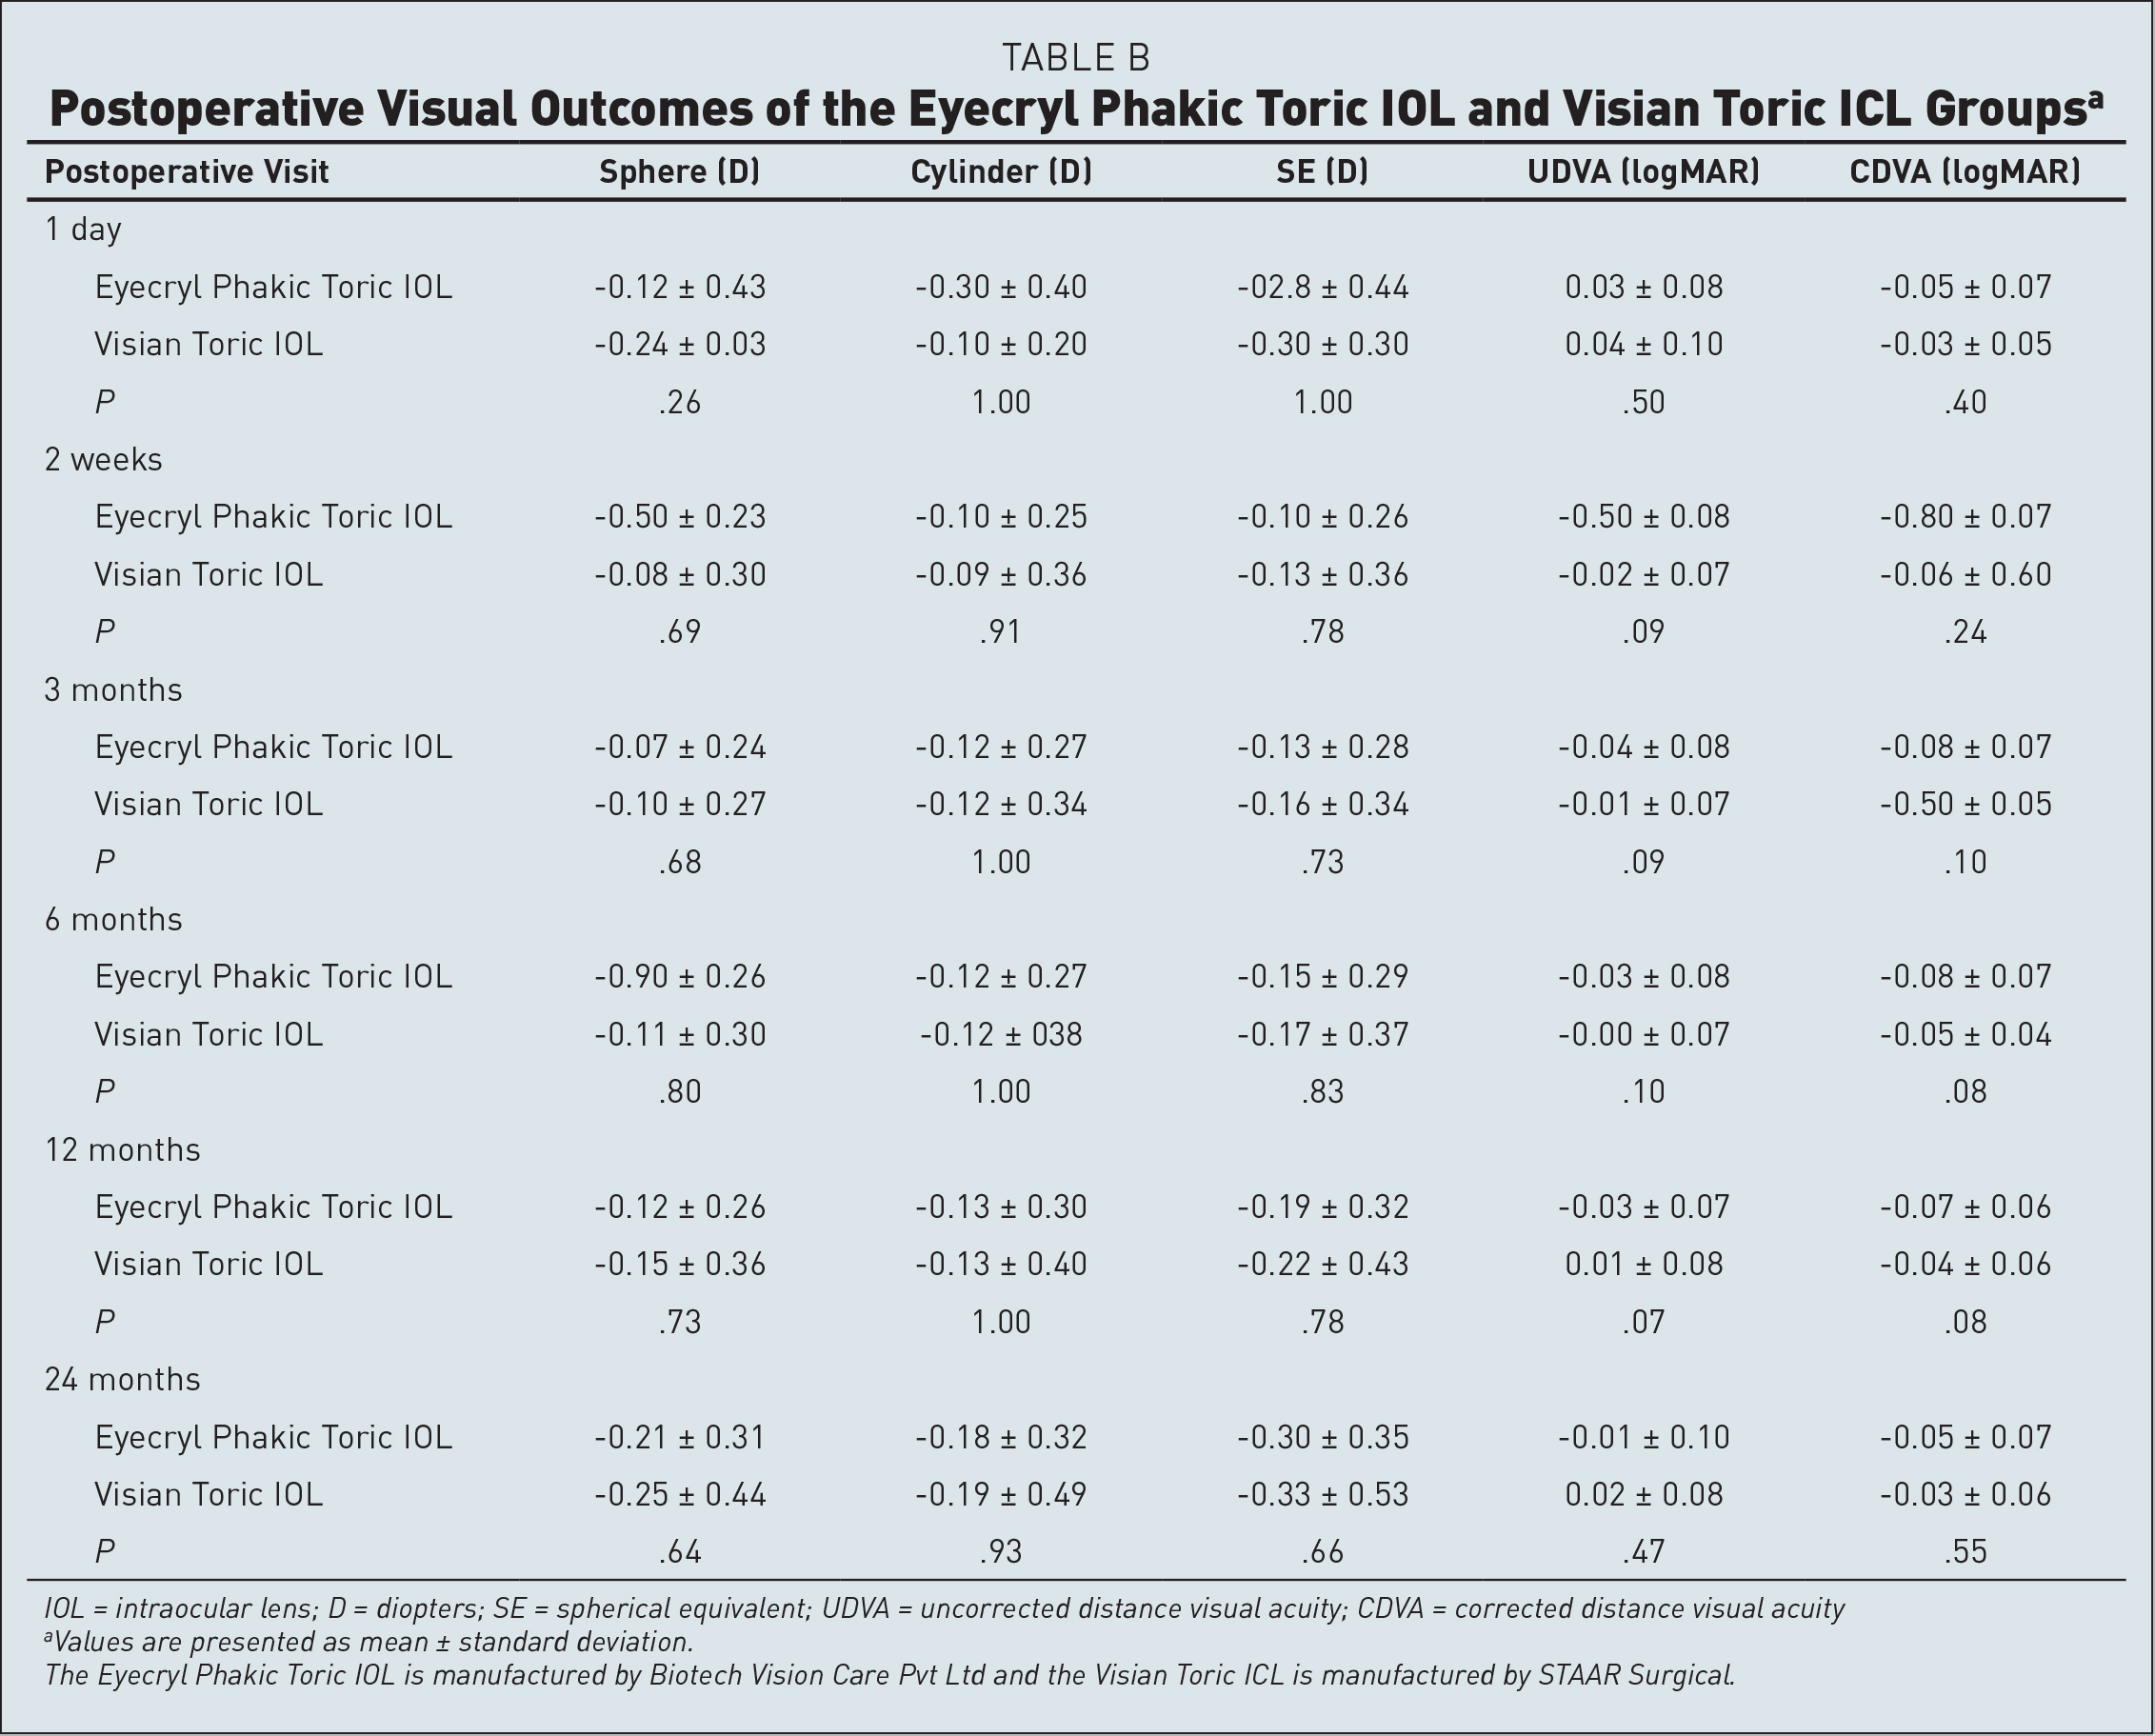 Postoperative Visual Outcomes of the Eyecryl Phakic Toric IOL and Visian Toric ICL Groupsa